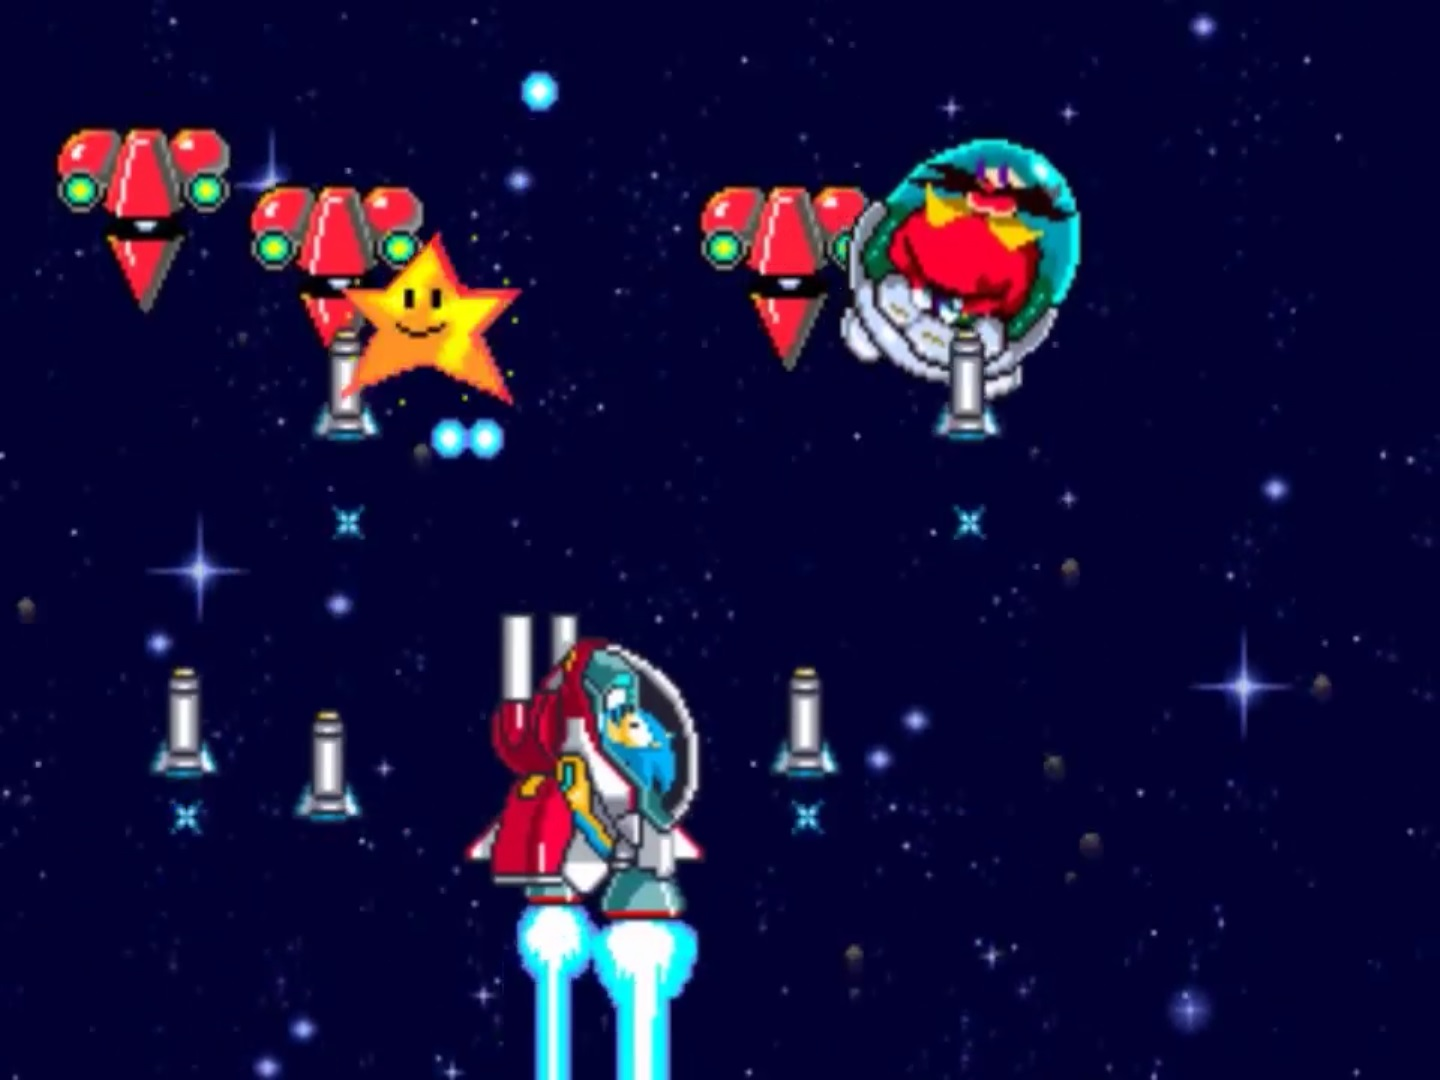 File:SegaSonicCosmoFighter Screen.jpg